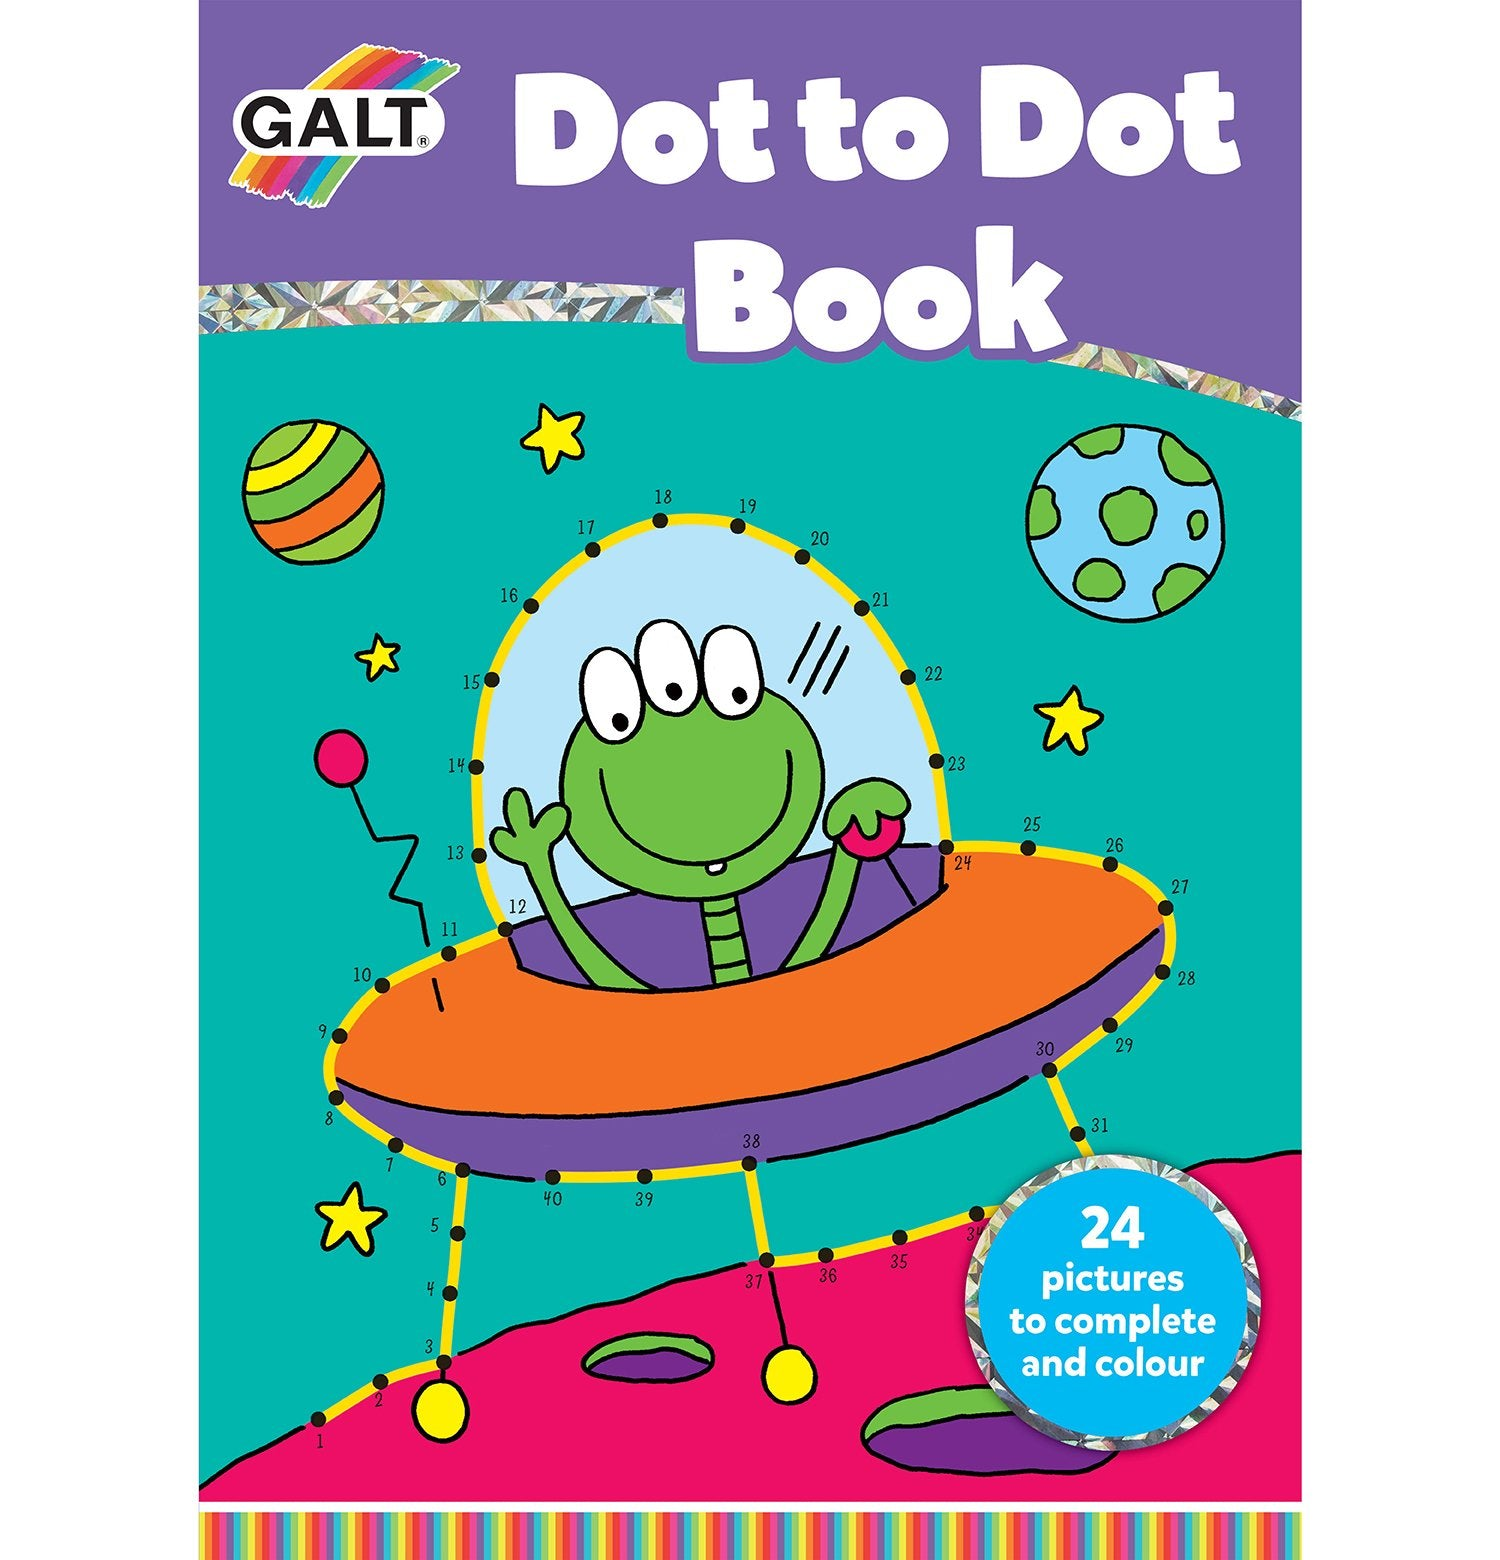 Dot to Dot Book - Galt